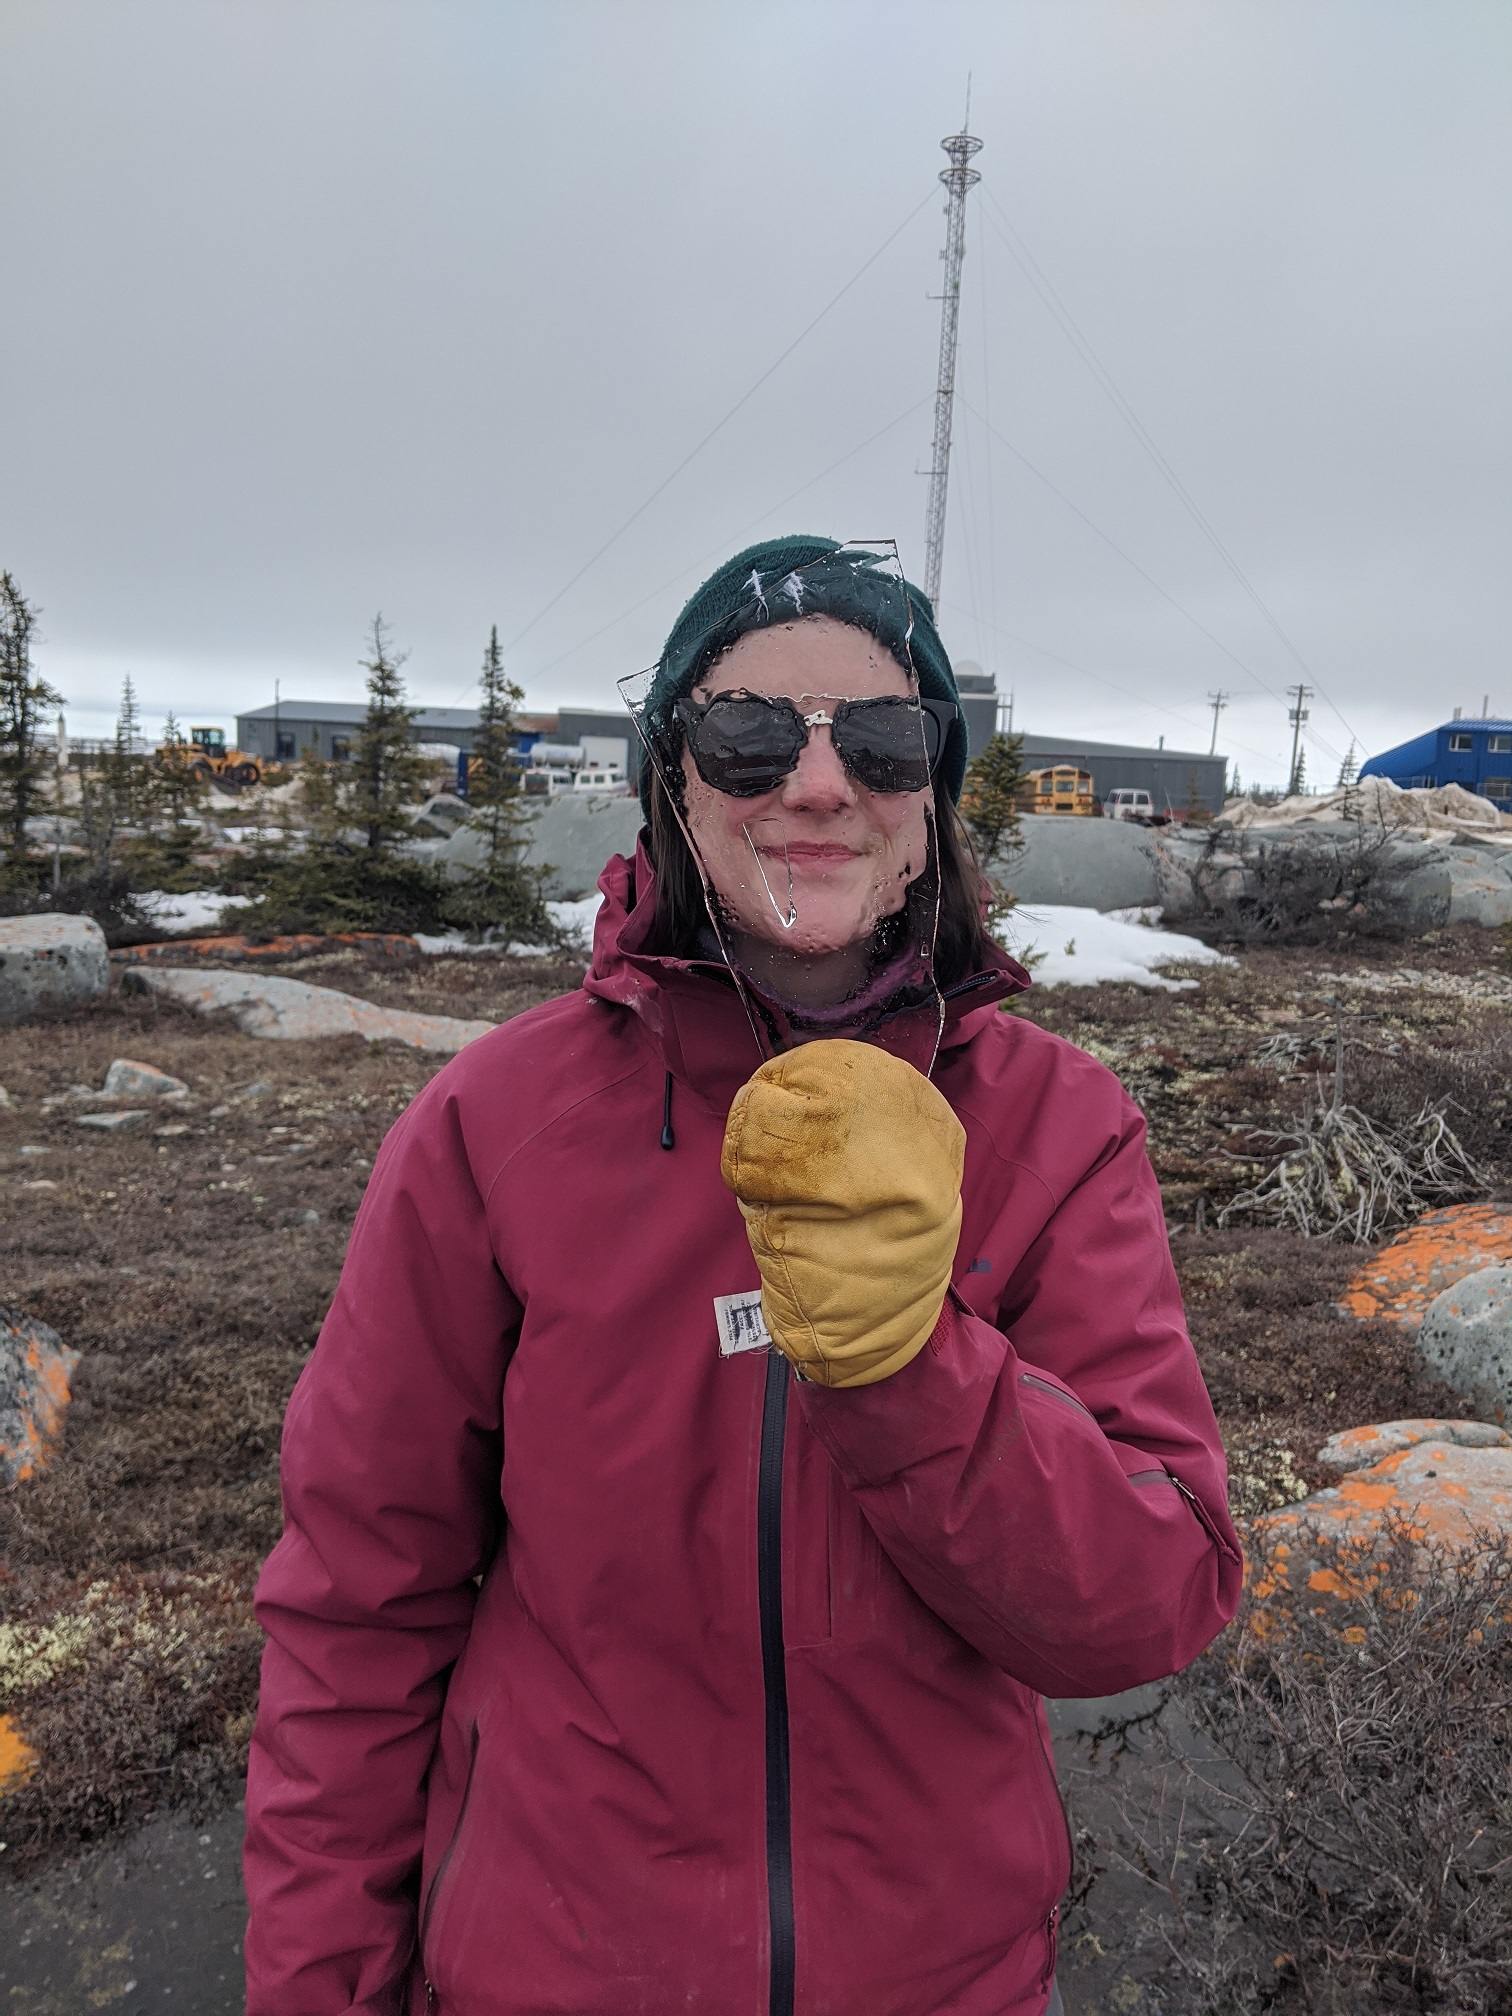 Erica holding a piece of ice from a tundra pond